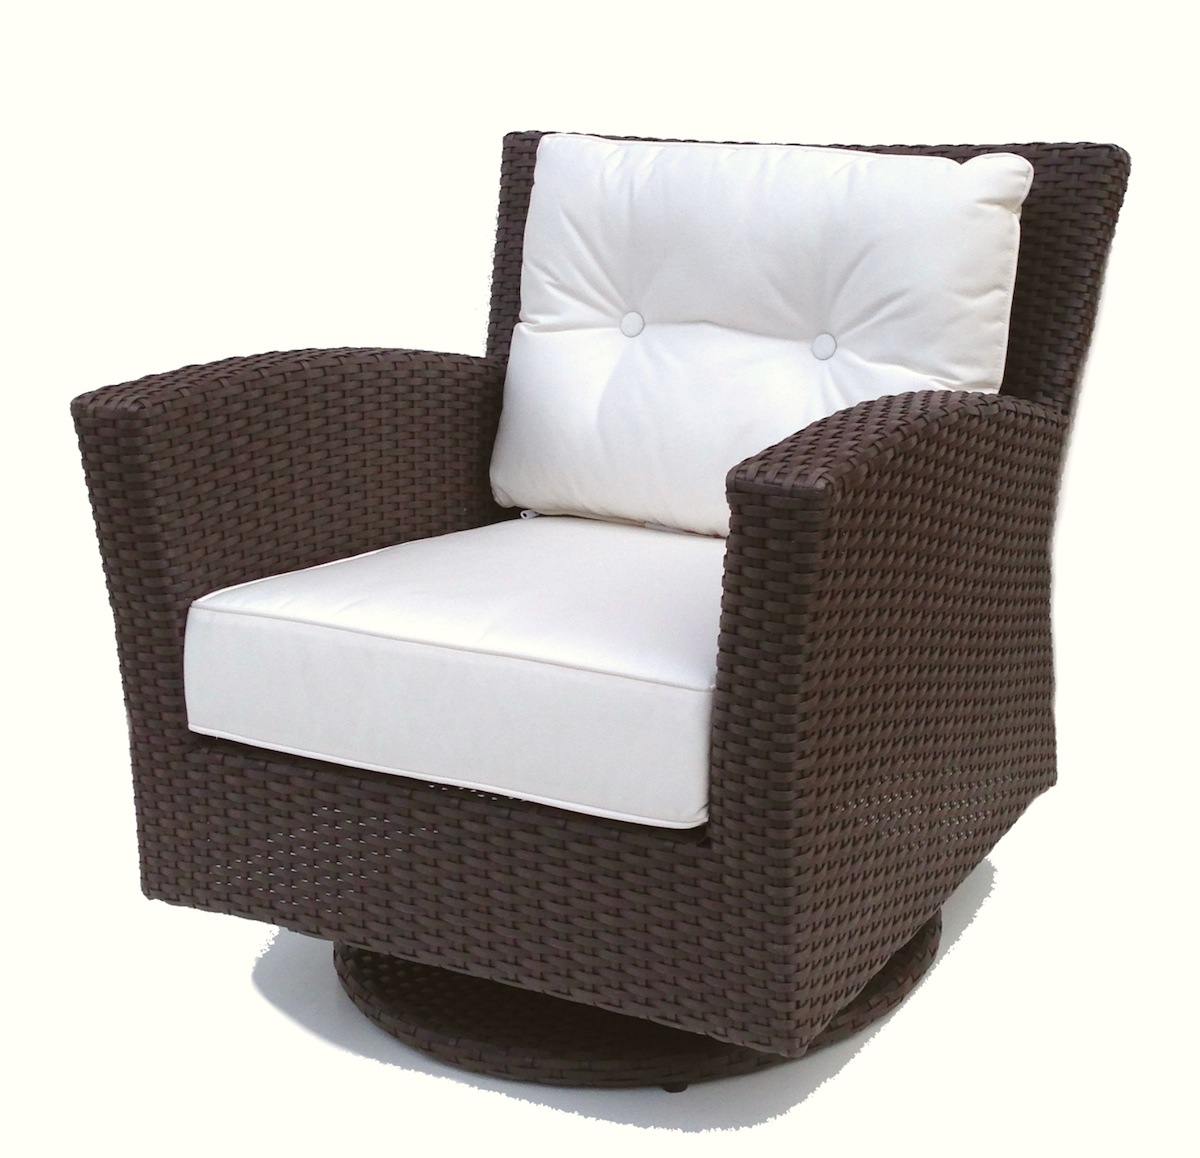 Rattan Rockers | Outdoor Swivel Glider Chairs | Rattan Swivel Rocker